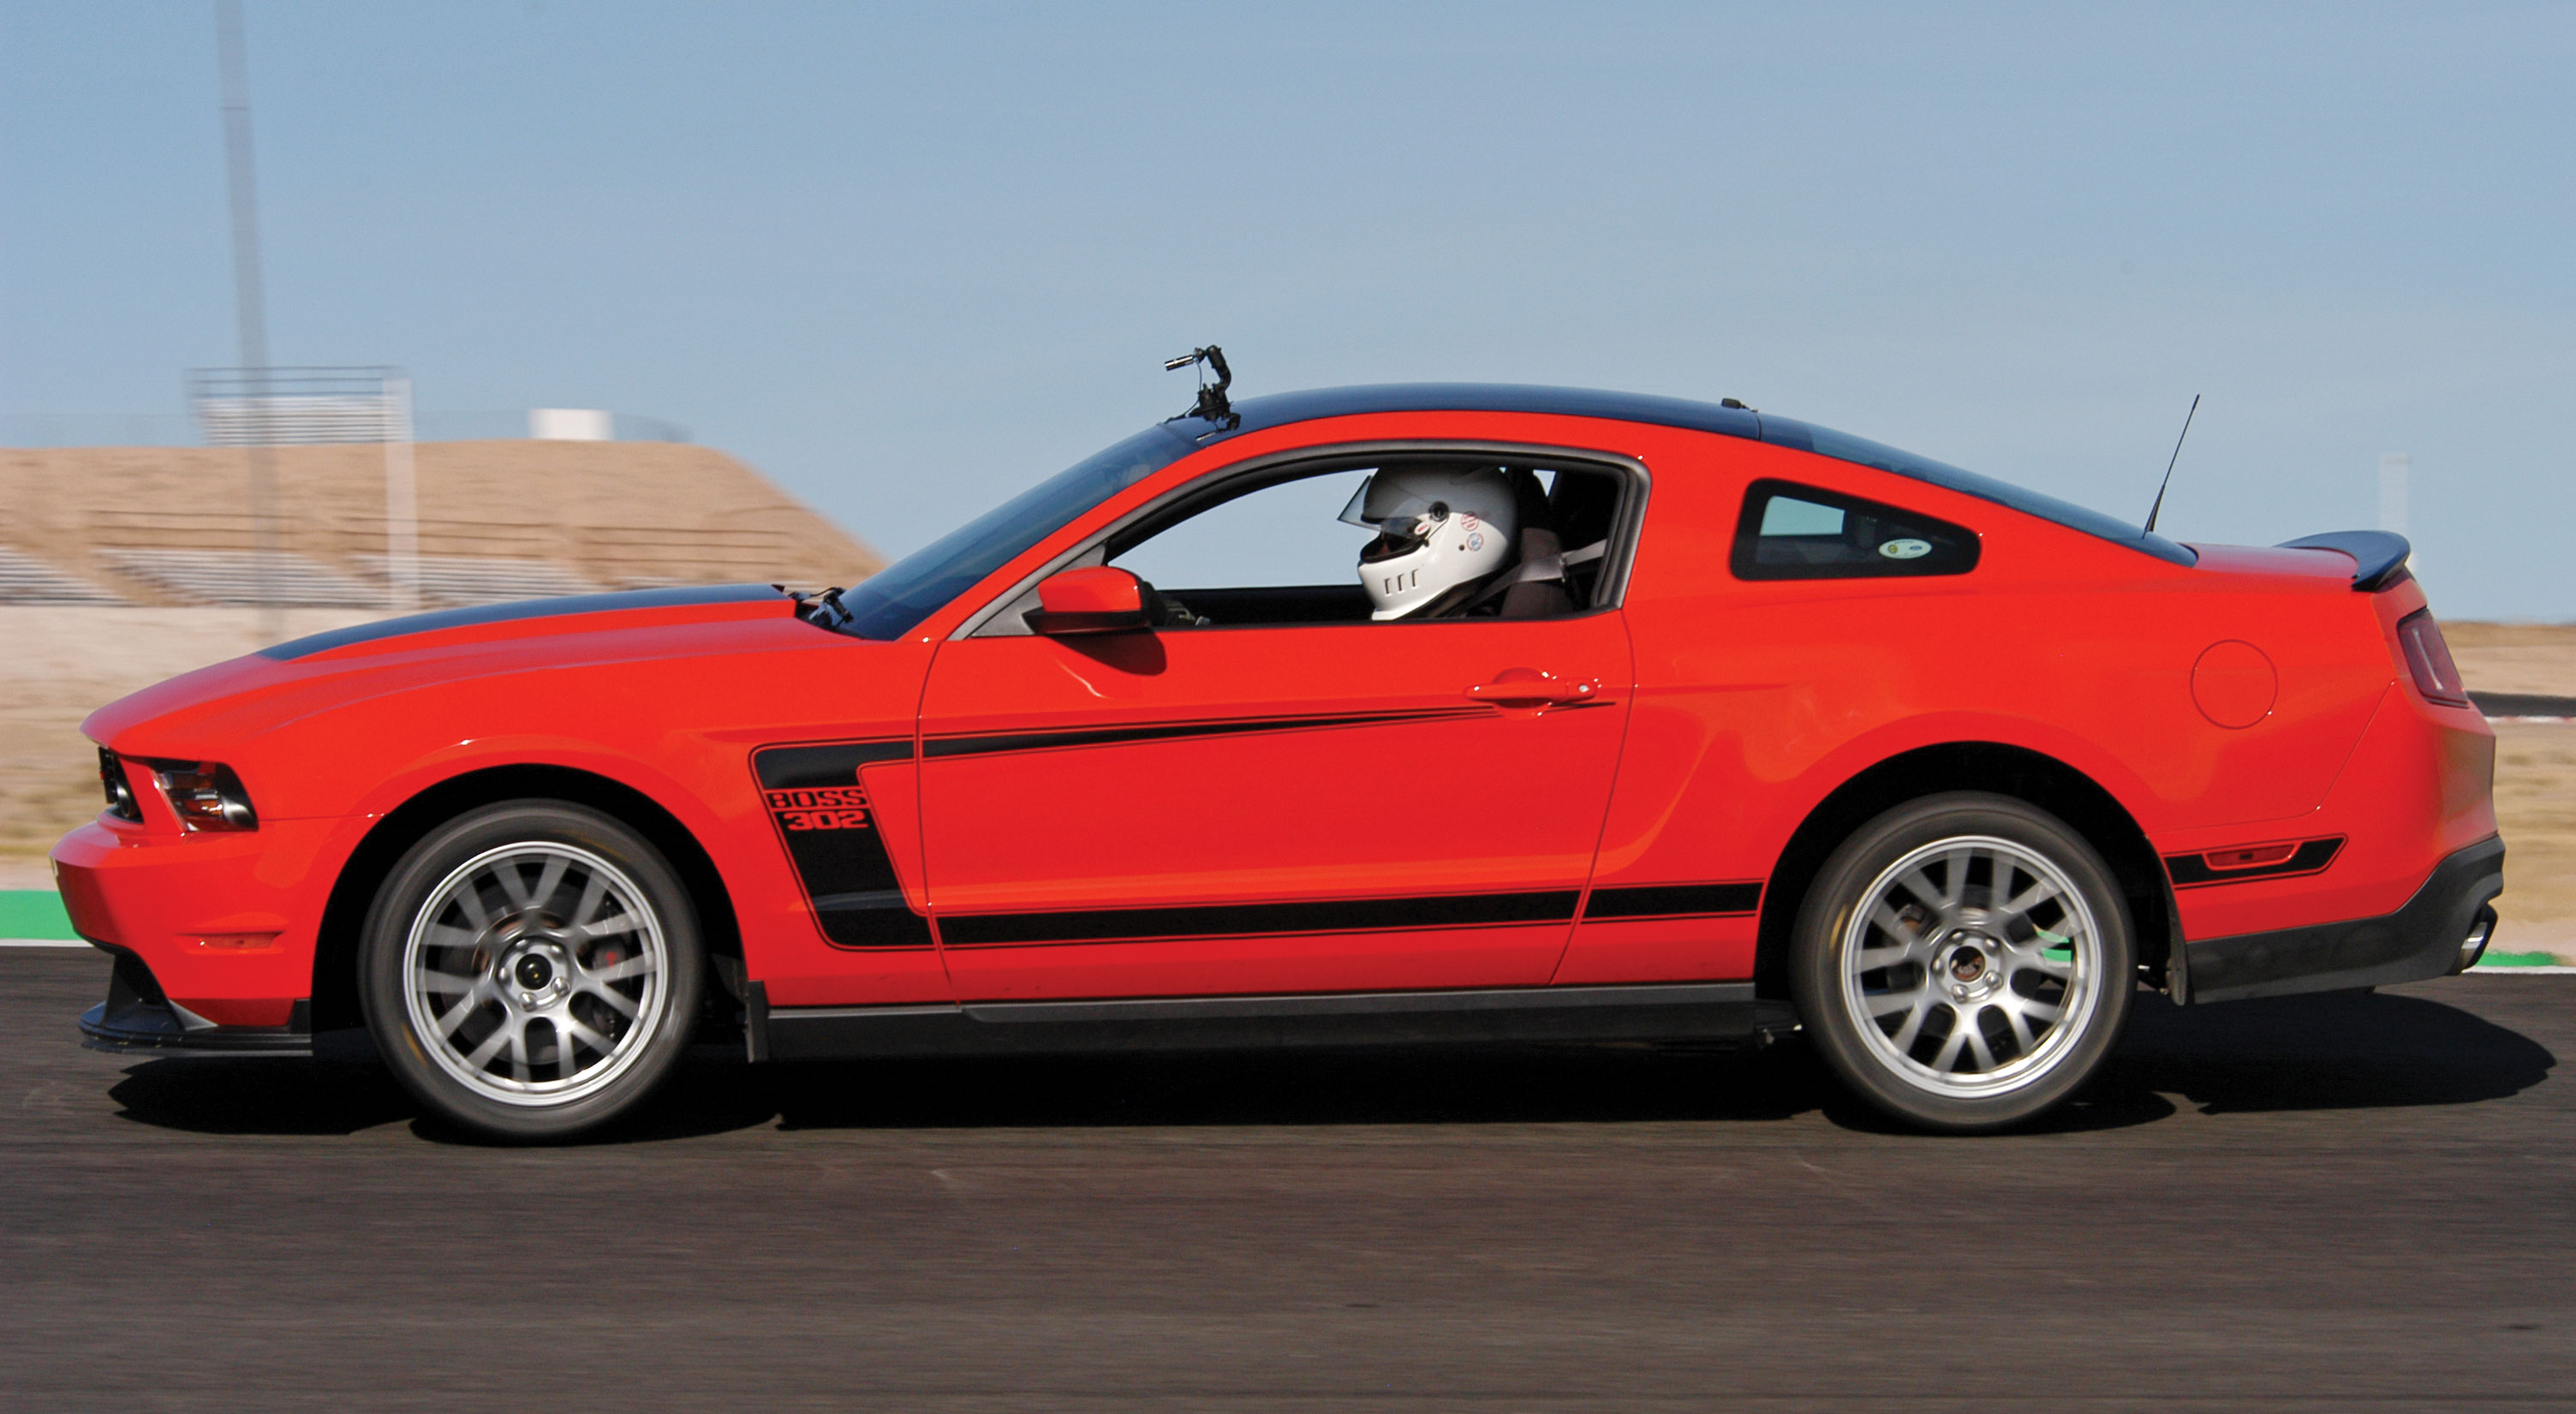 M5lp 1204 01 Ford Mustang Boss 302 Vs 302s 302 Side View